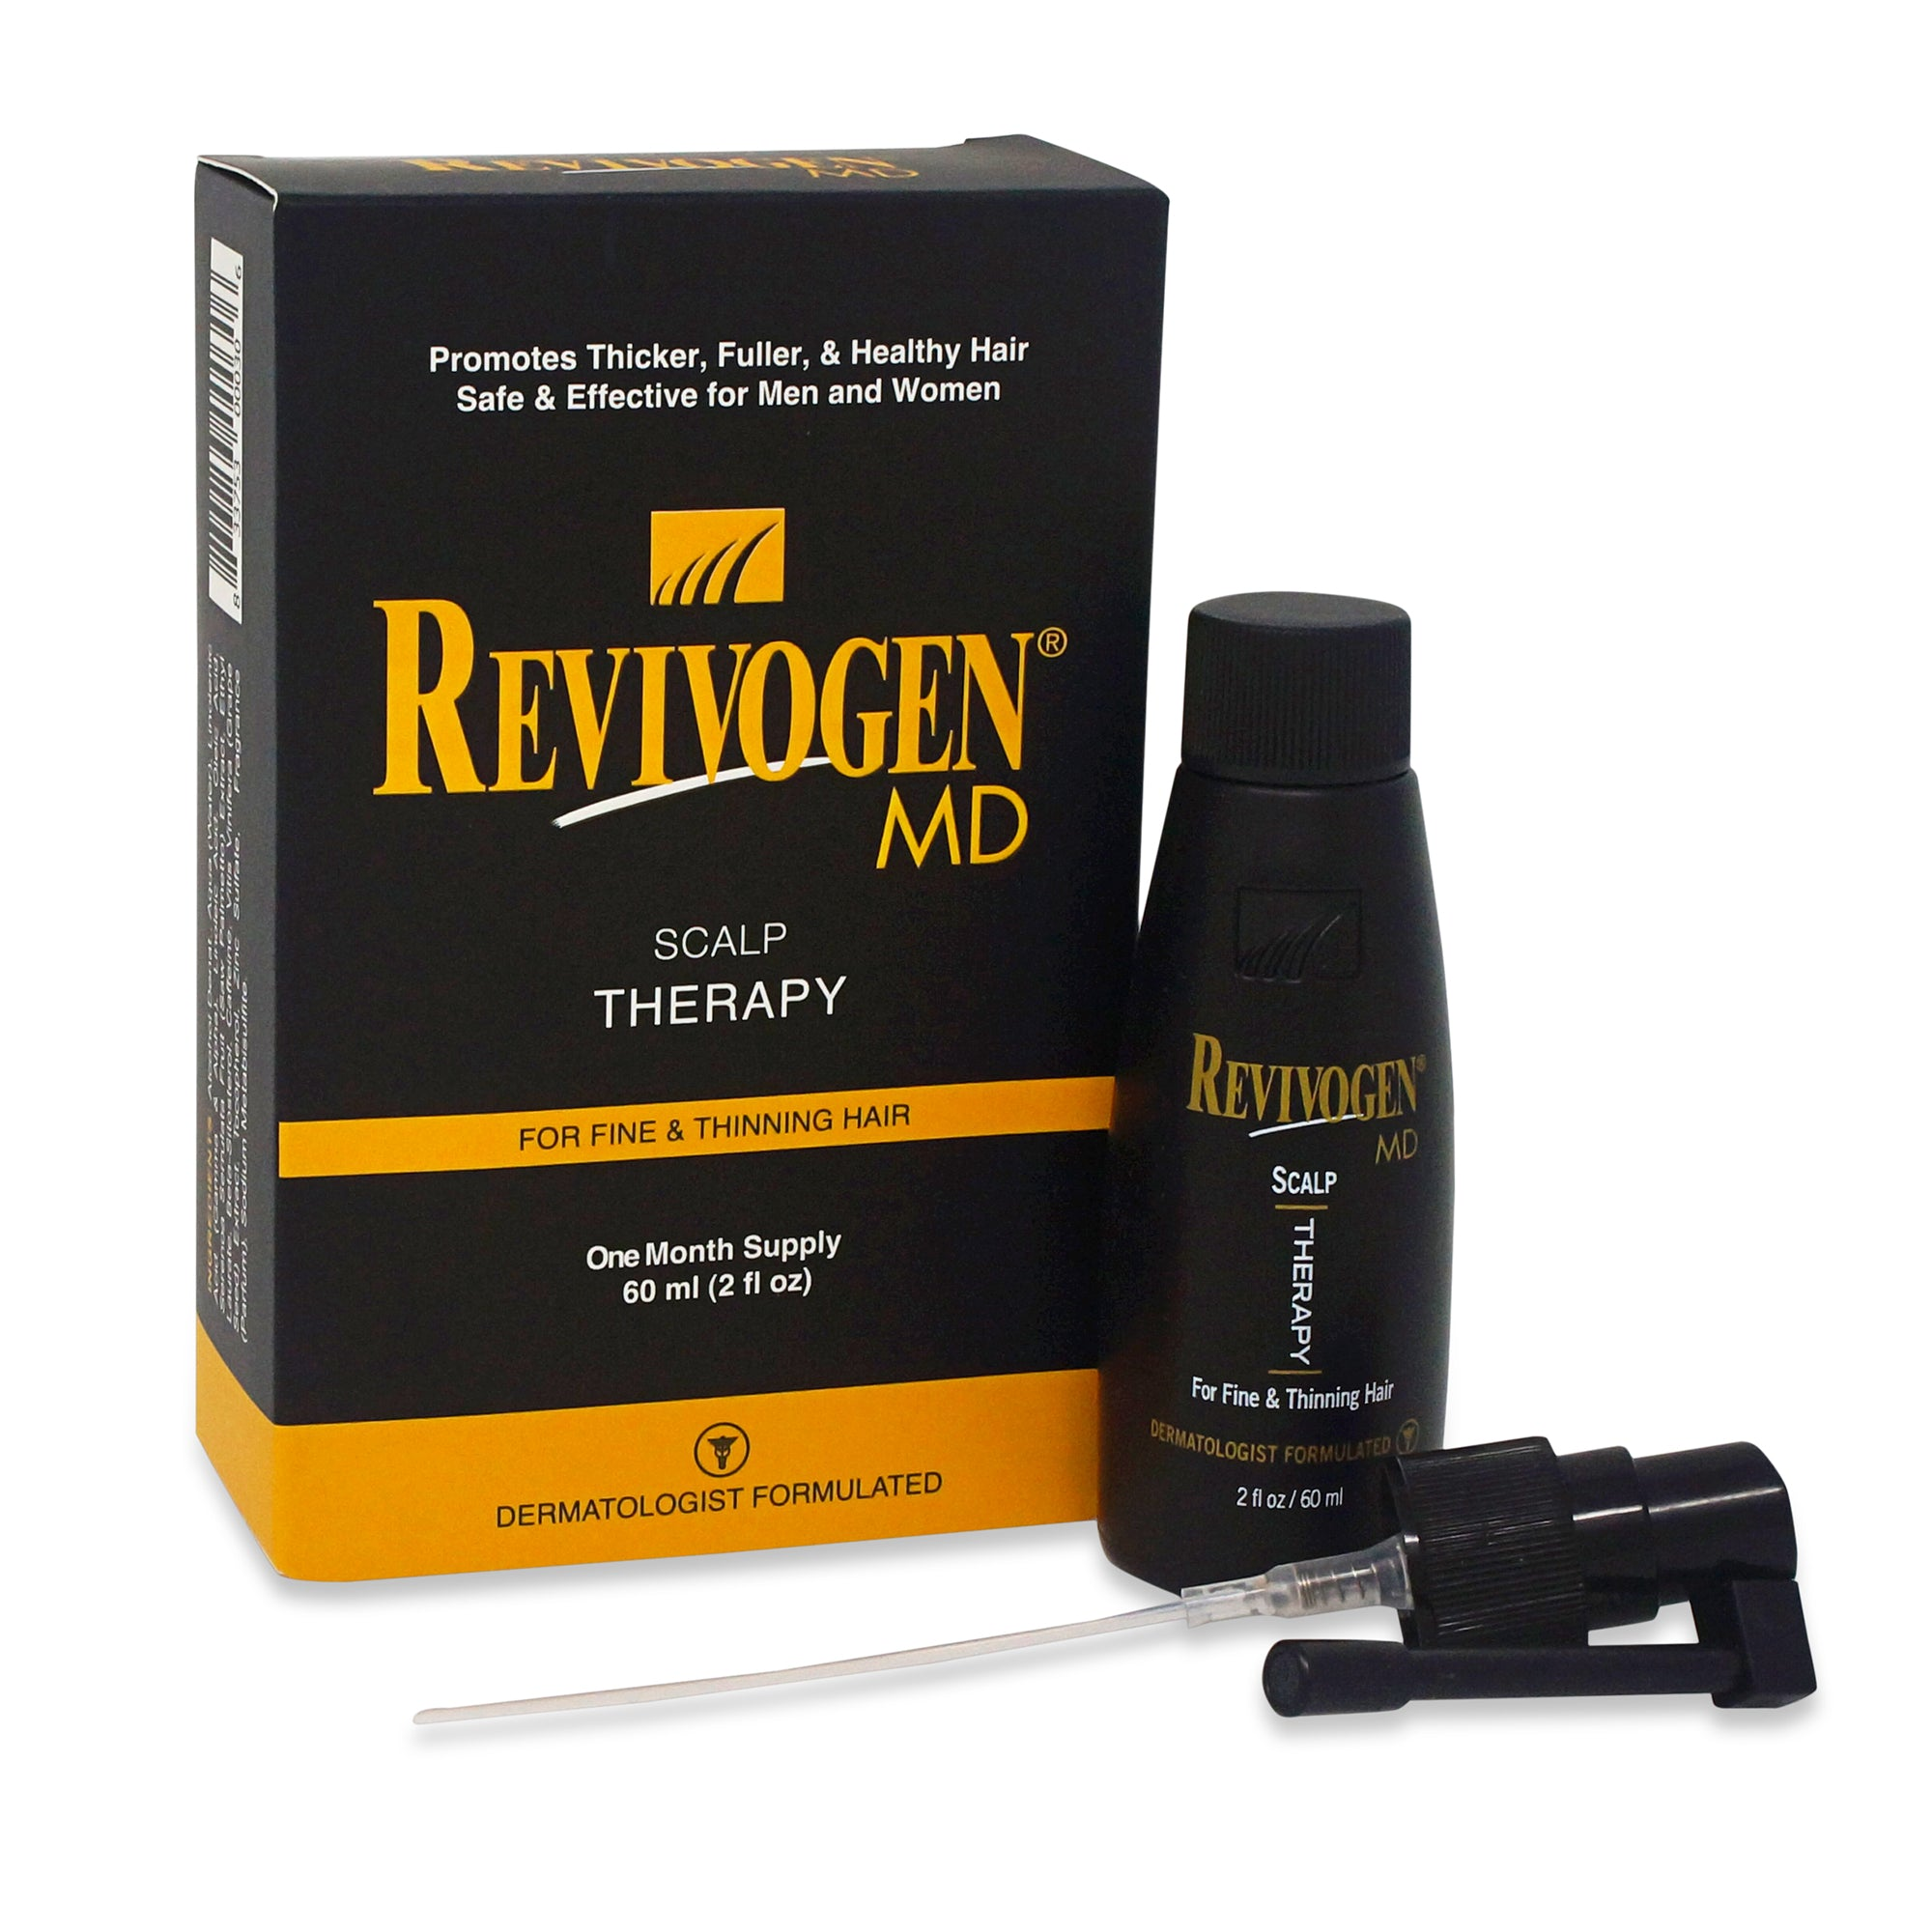 ADVANCED ~ REVIVOGEN MD SCALP THERAPY 1 MONTHS SUPPLY